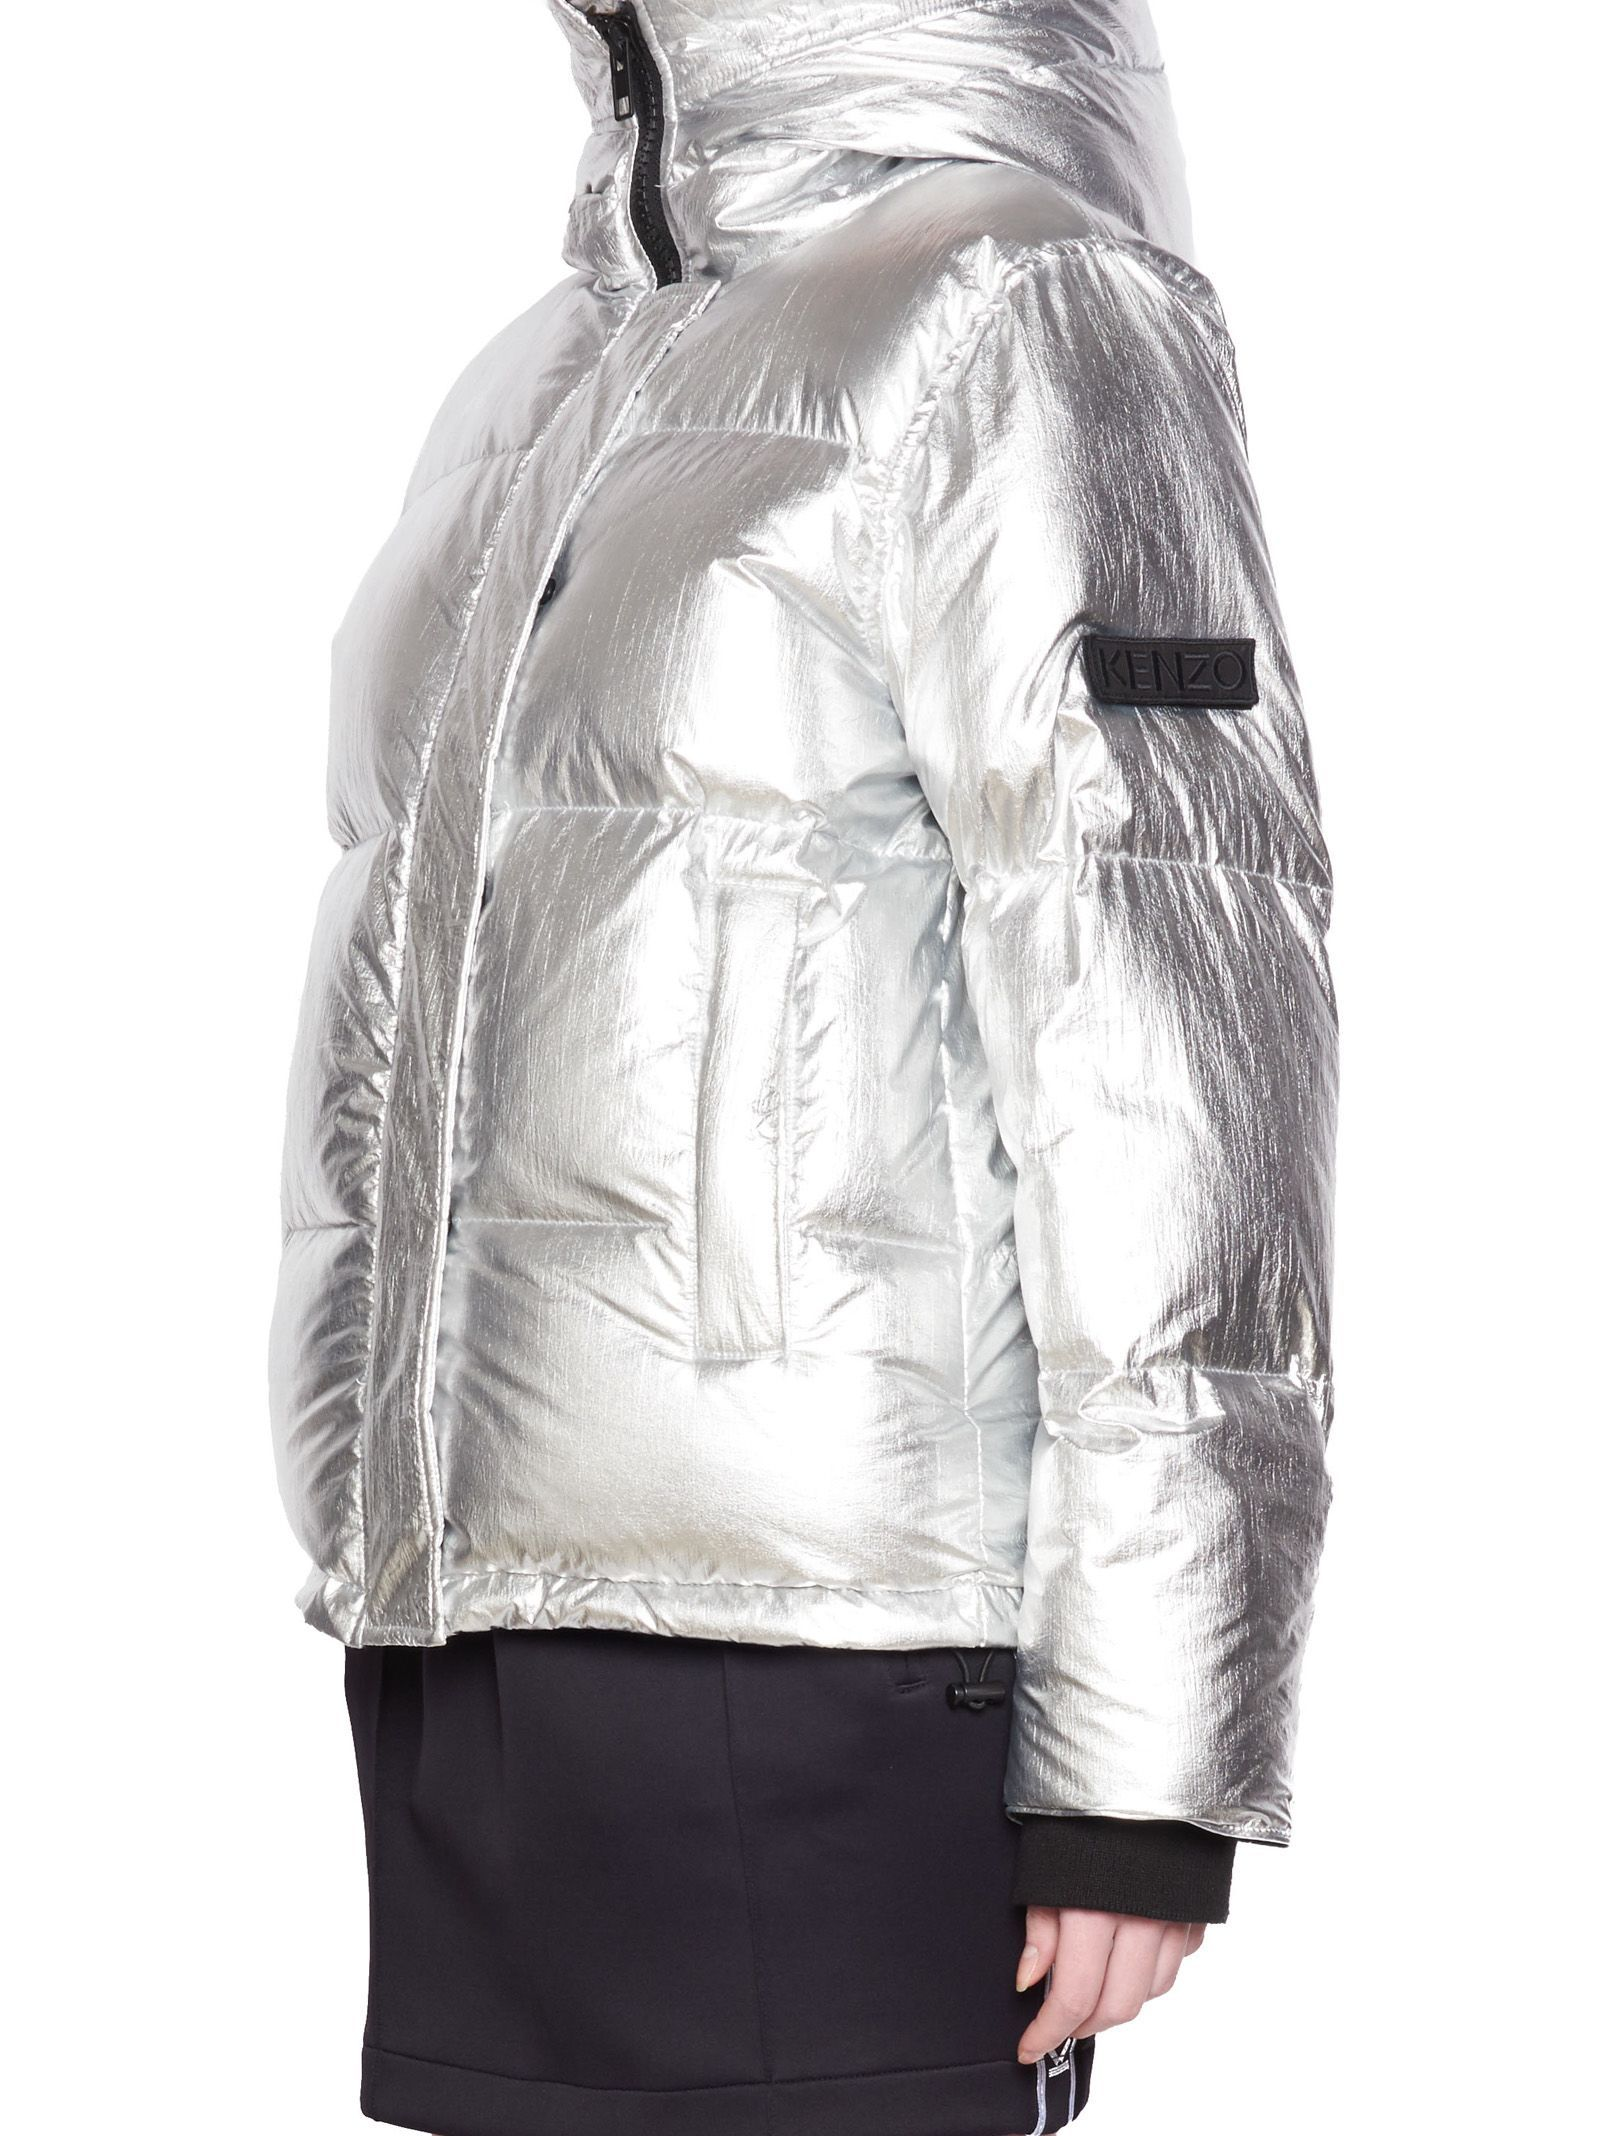 d8c45a18 Kenzo - Kenzo Jacket - Silver, Women's Jackets | Italist | INSULATED ...